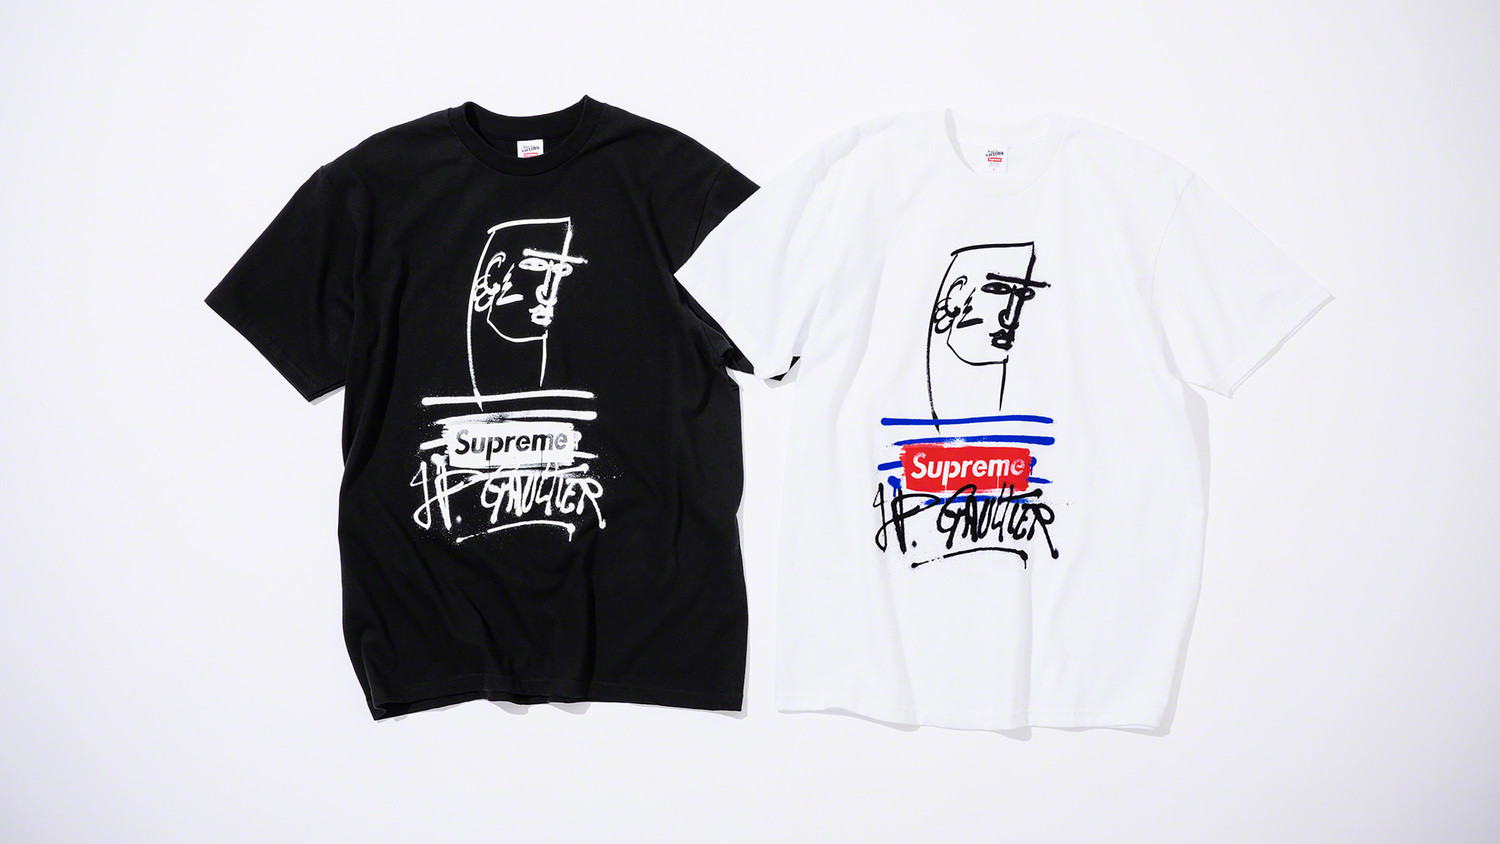 Best Style Releases This Week: Supreme x Jean Paul Gaultier